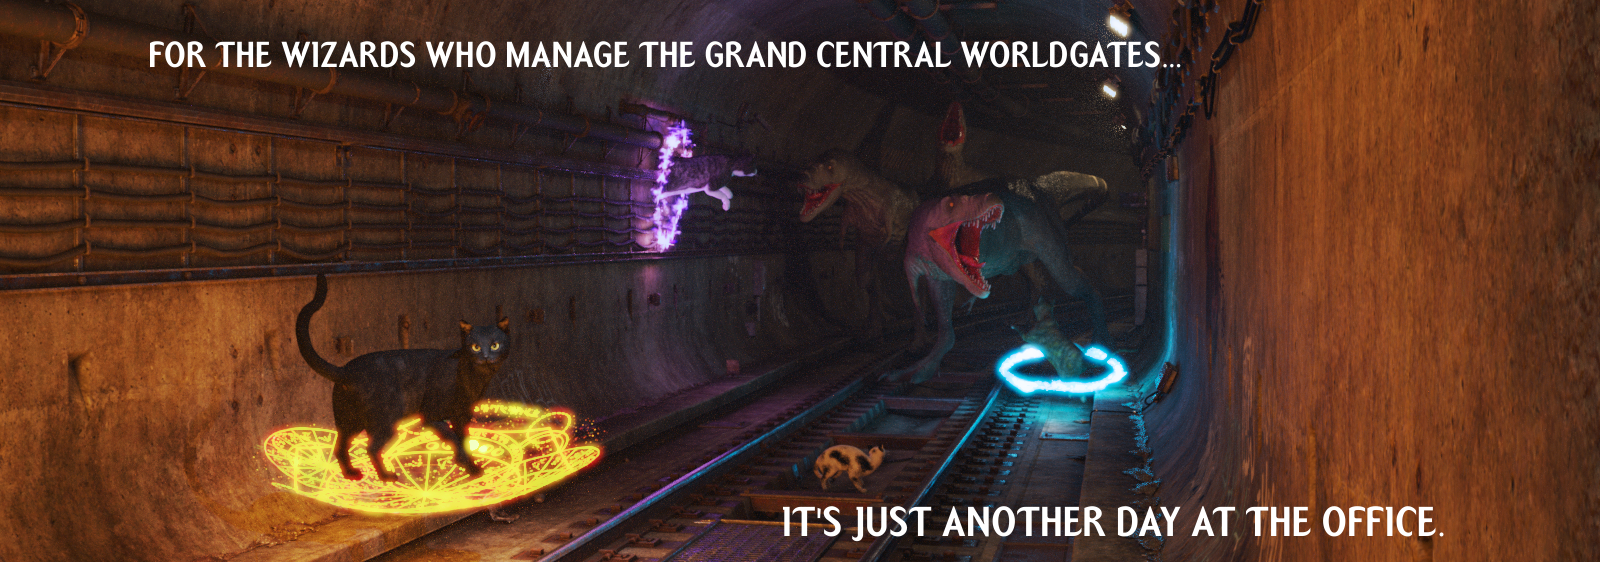 For the wizards who manage the Grand Central worldgates... it's just another day at the office.